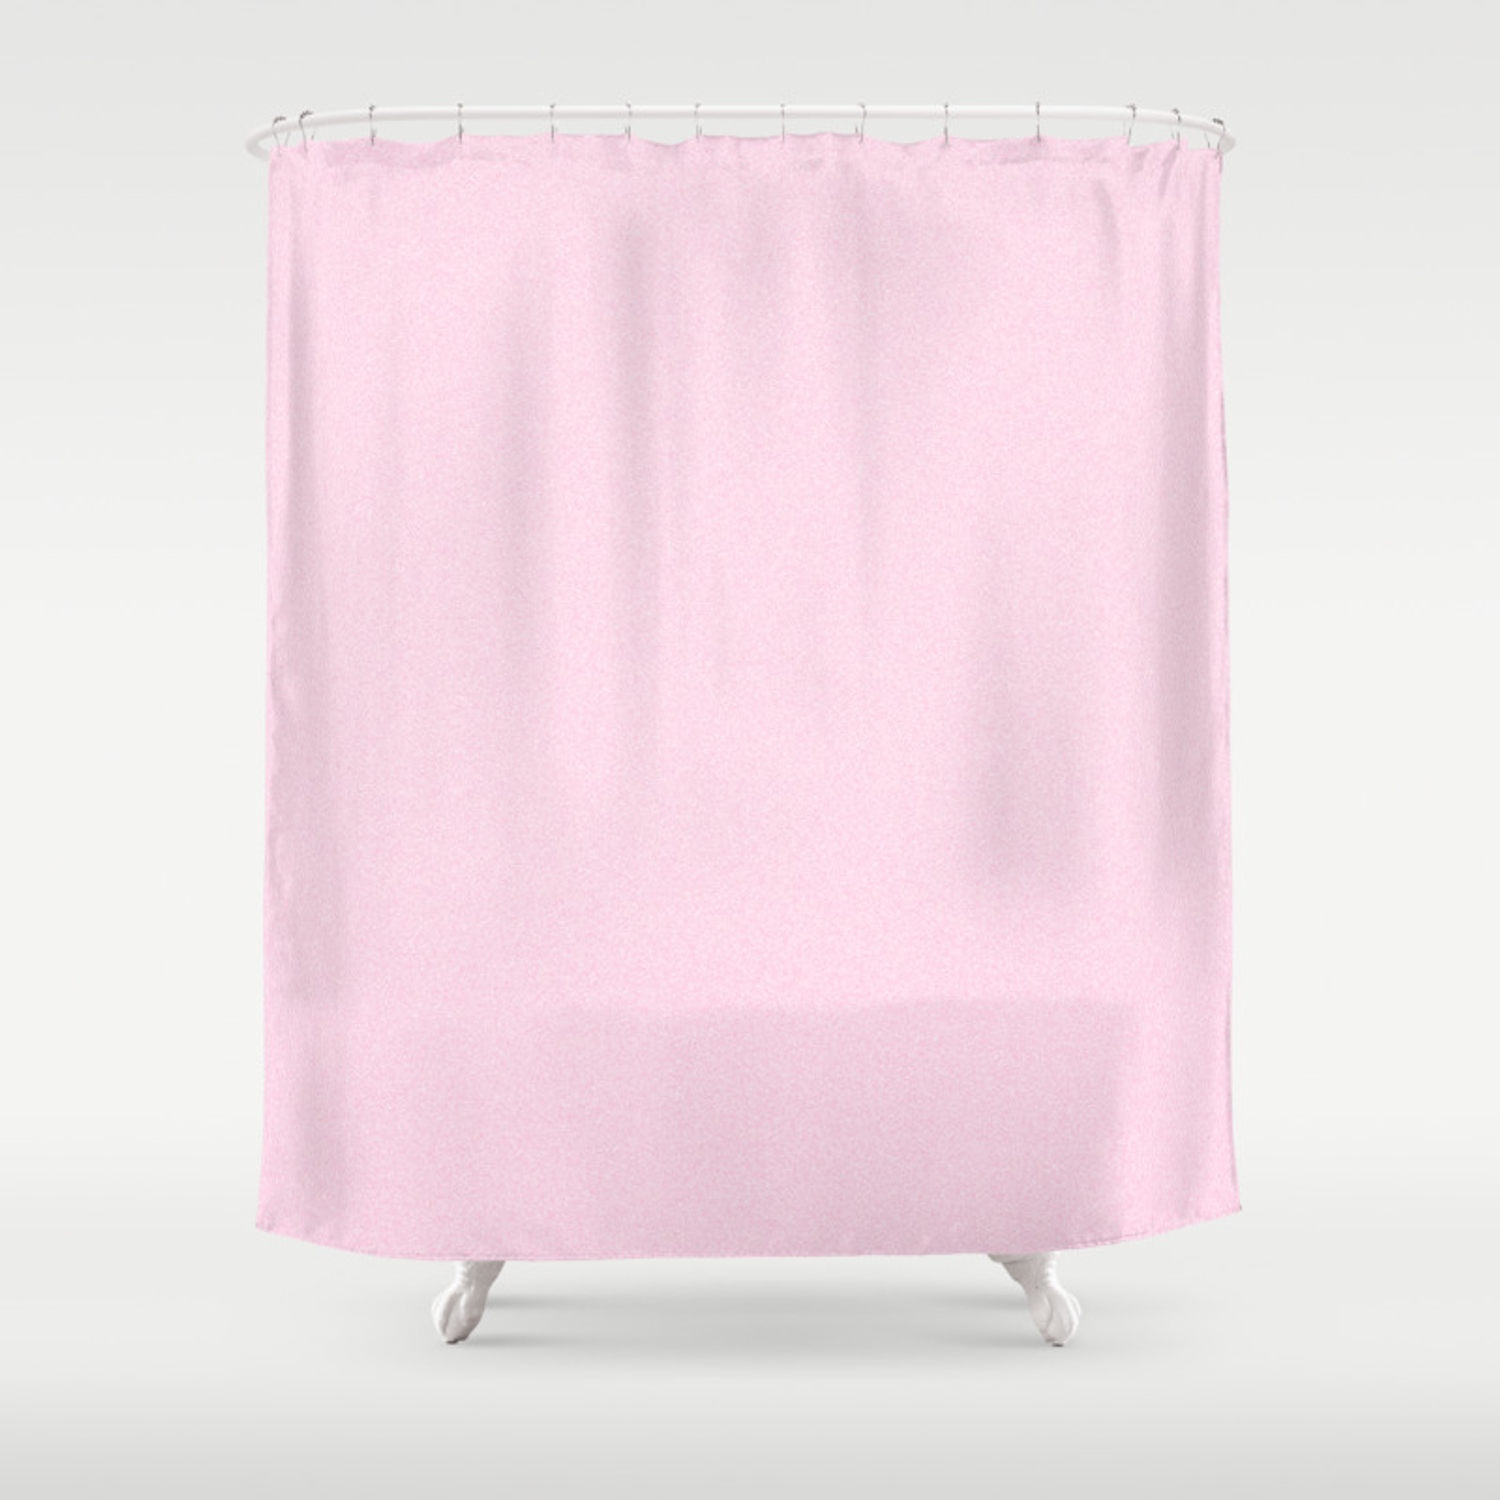 Dense Melange White And Cotton Candy Pink Shower Curtain